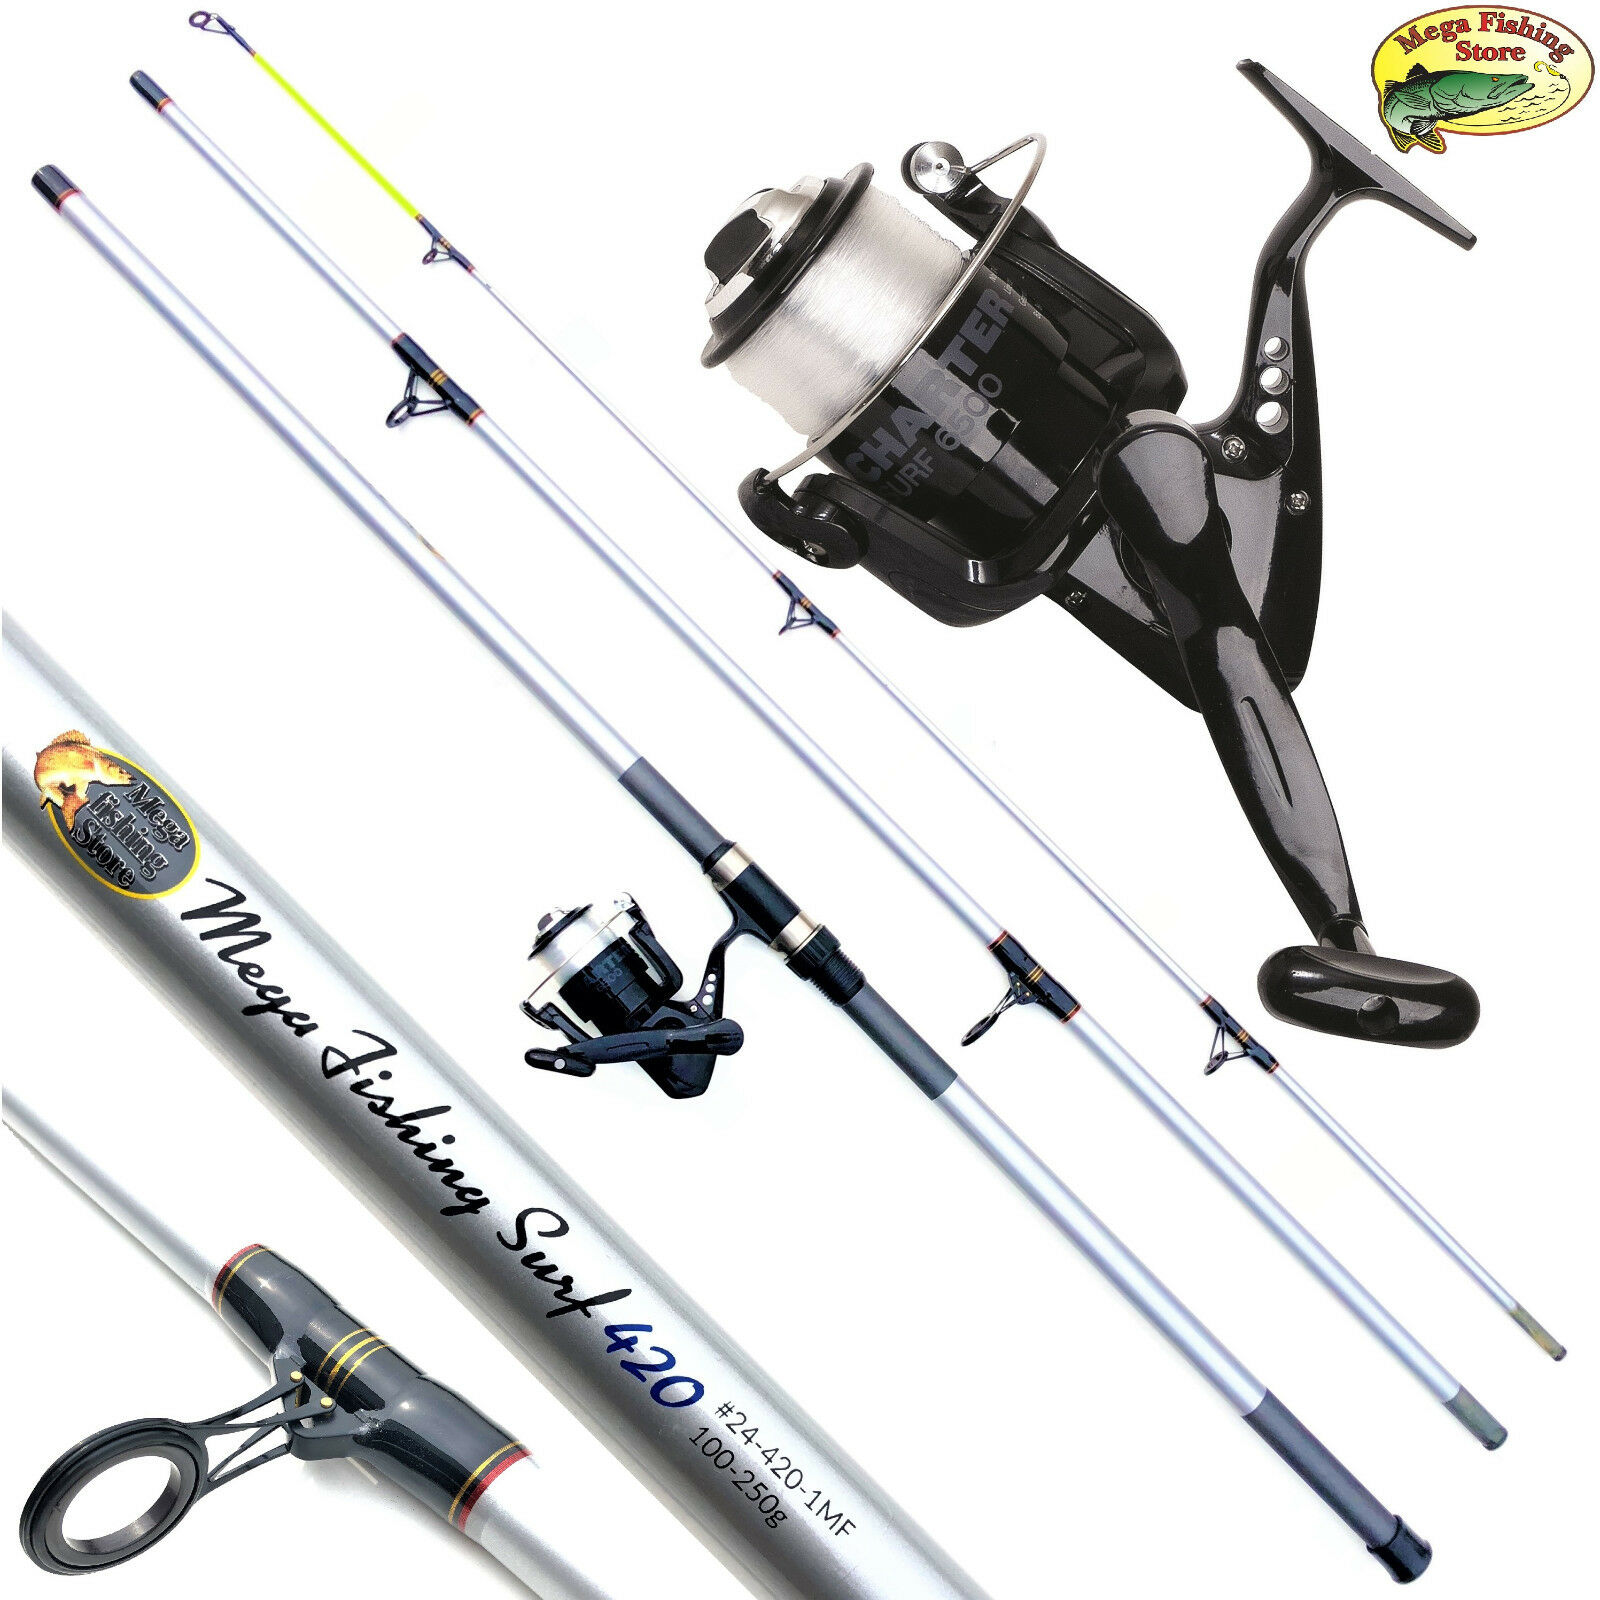 Mega Fishing Surf brandungs Combo increspature del mare stadia ruolo & 3,90m4,20m  100250g